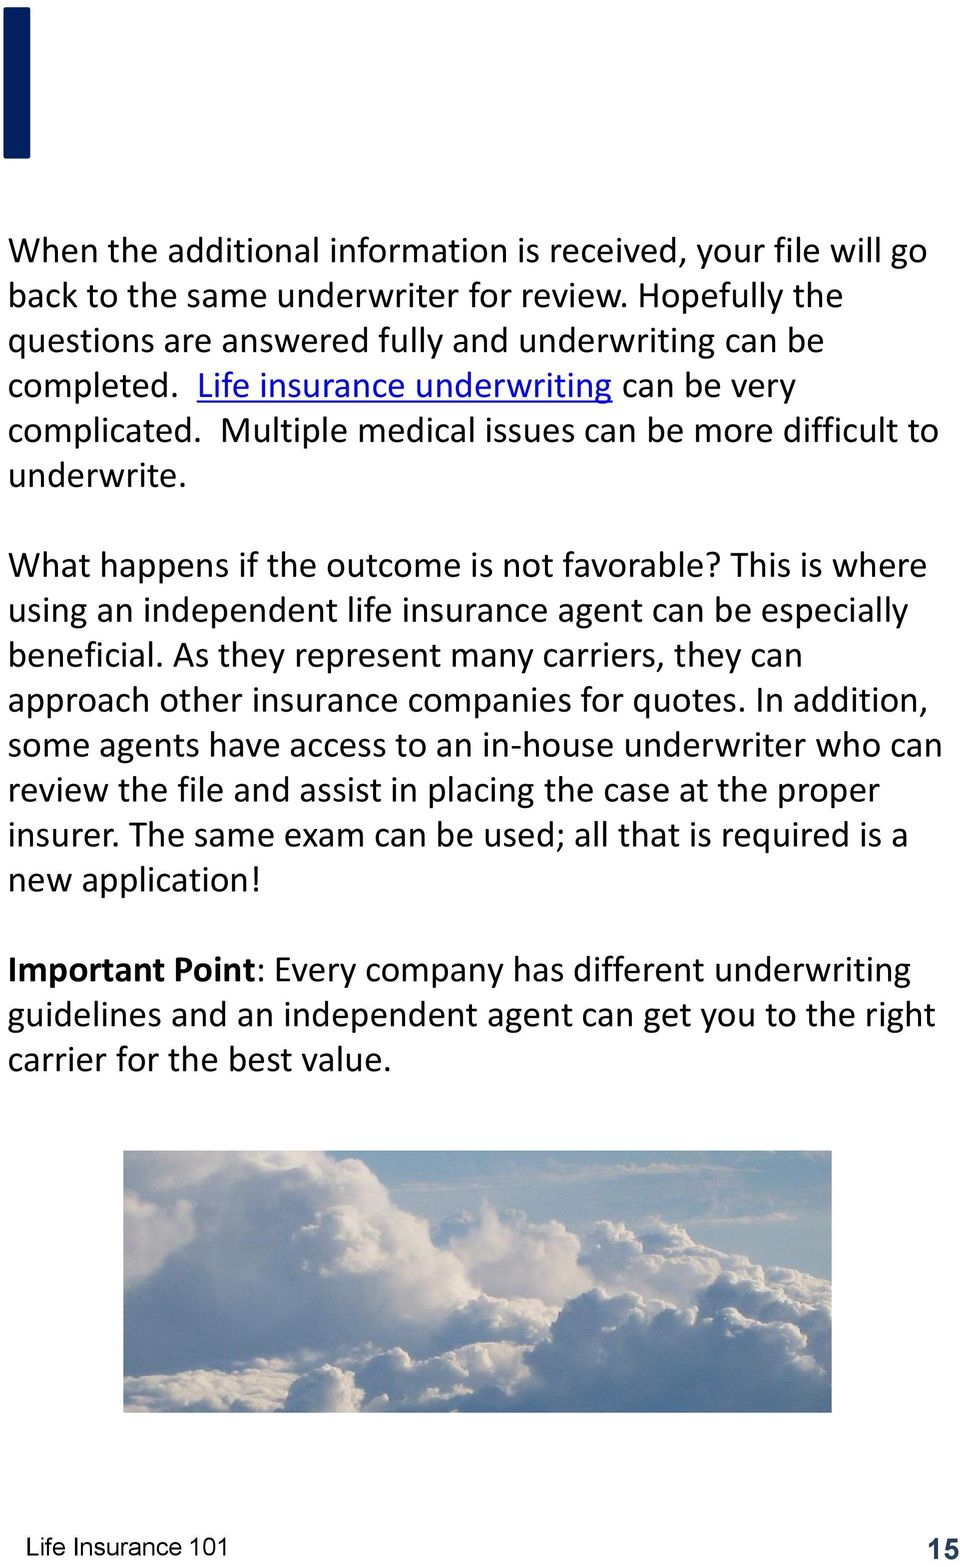 This is where using an independent life insurance agent can be especially beneficial. As they represent many carriers, they can approach other insurance companies for quotes.